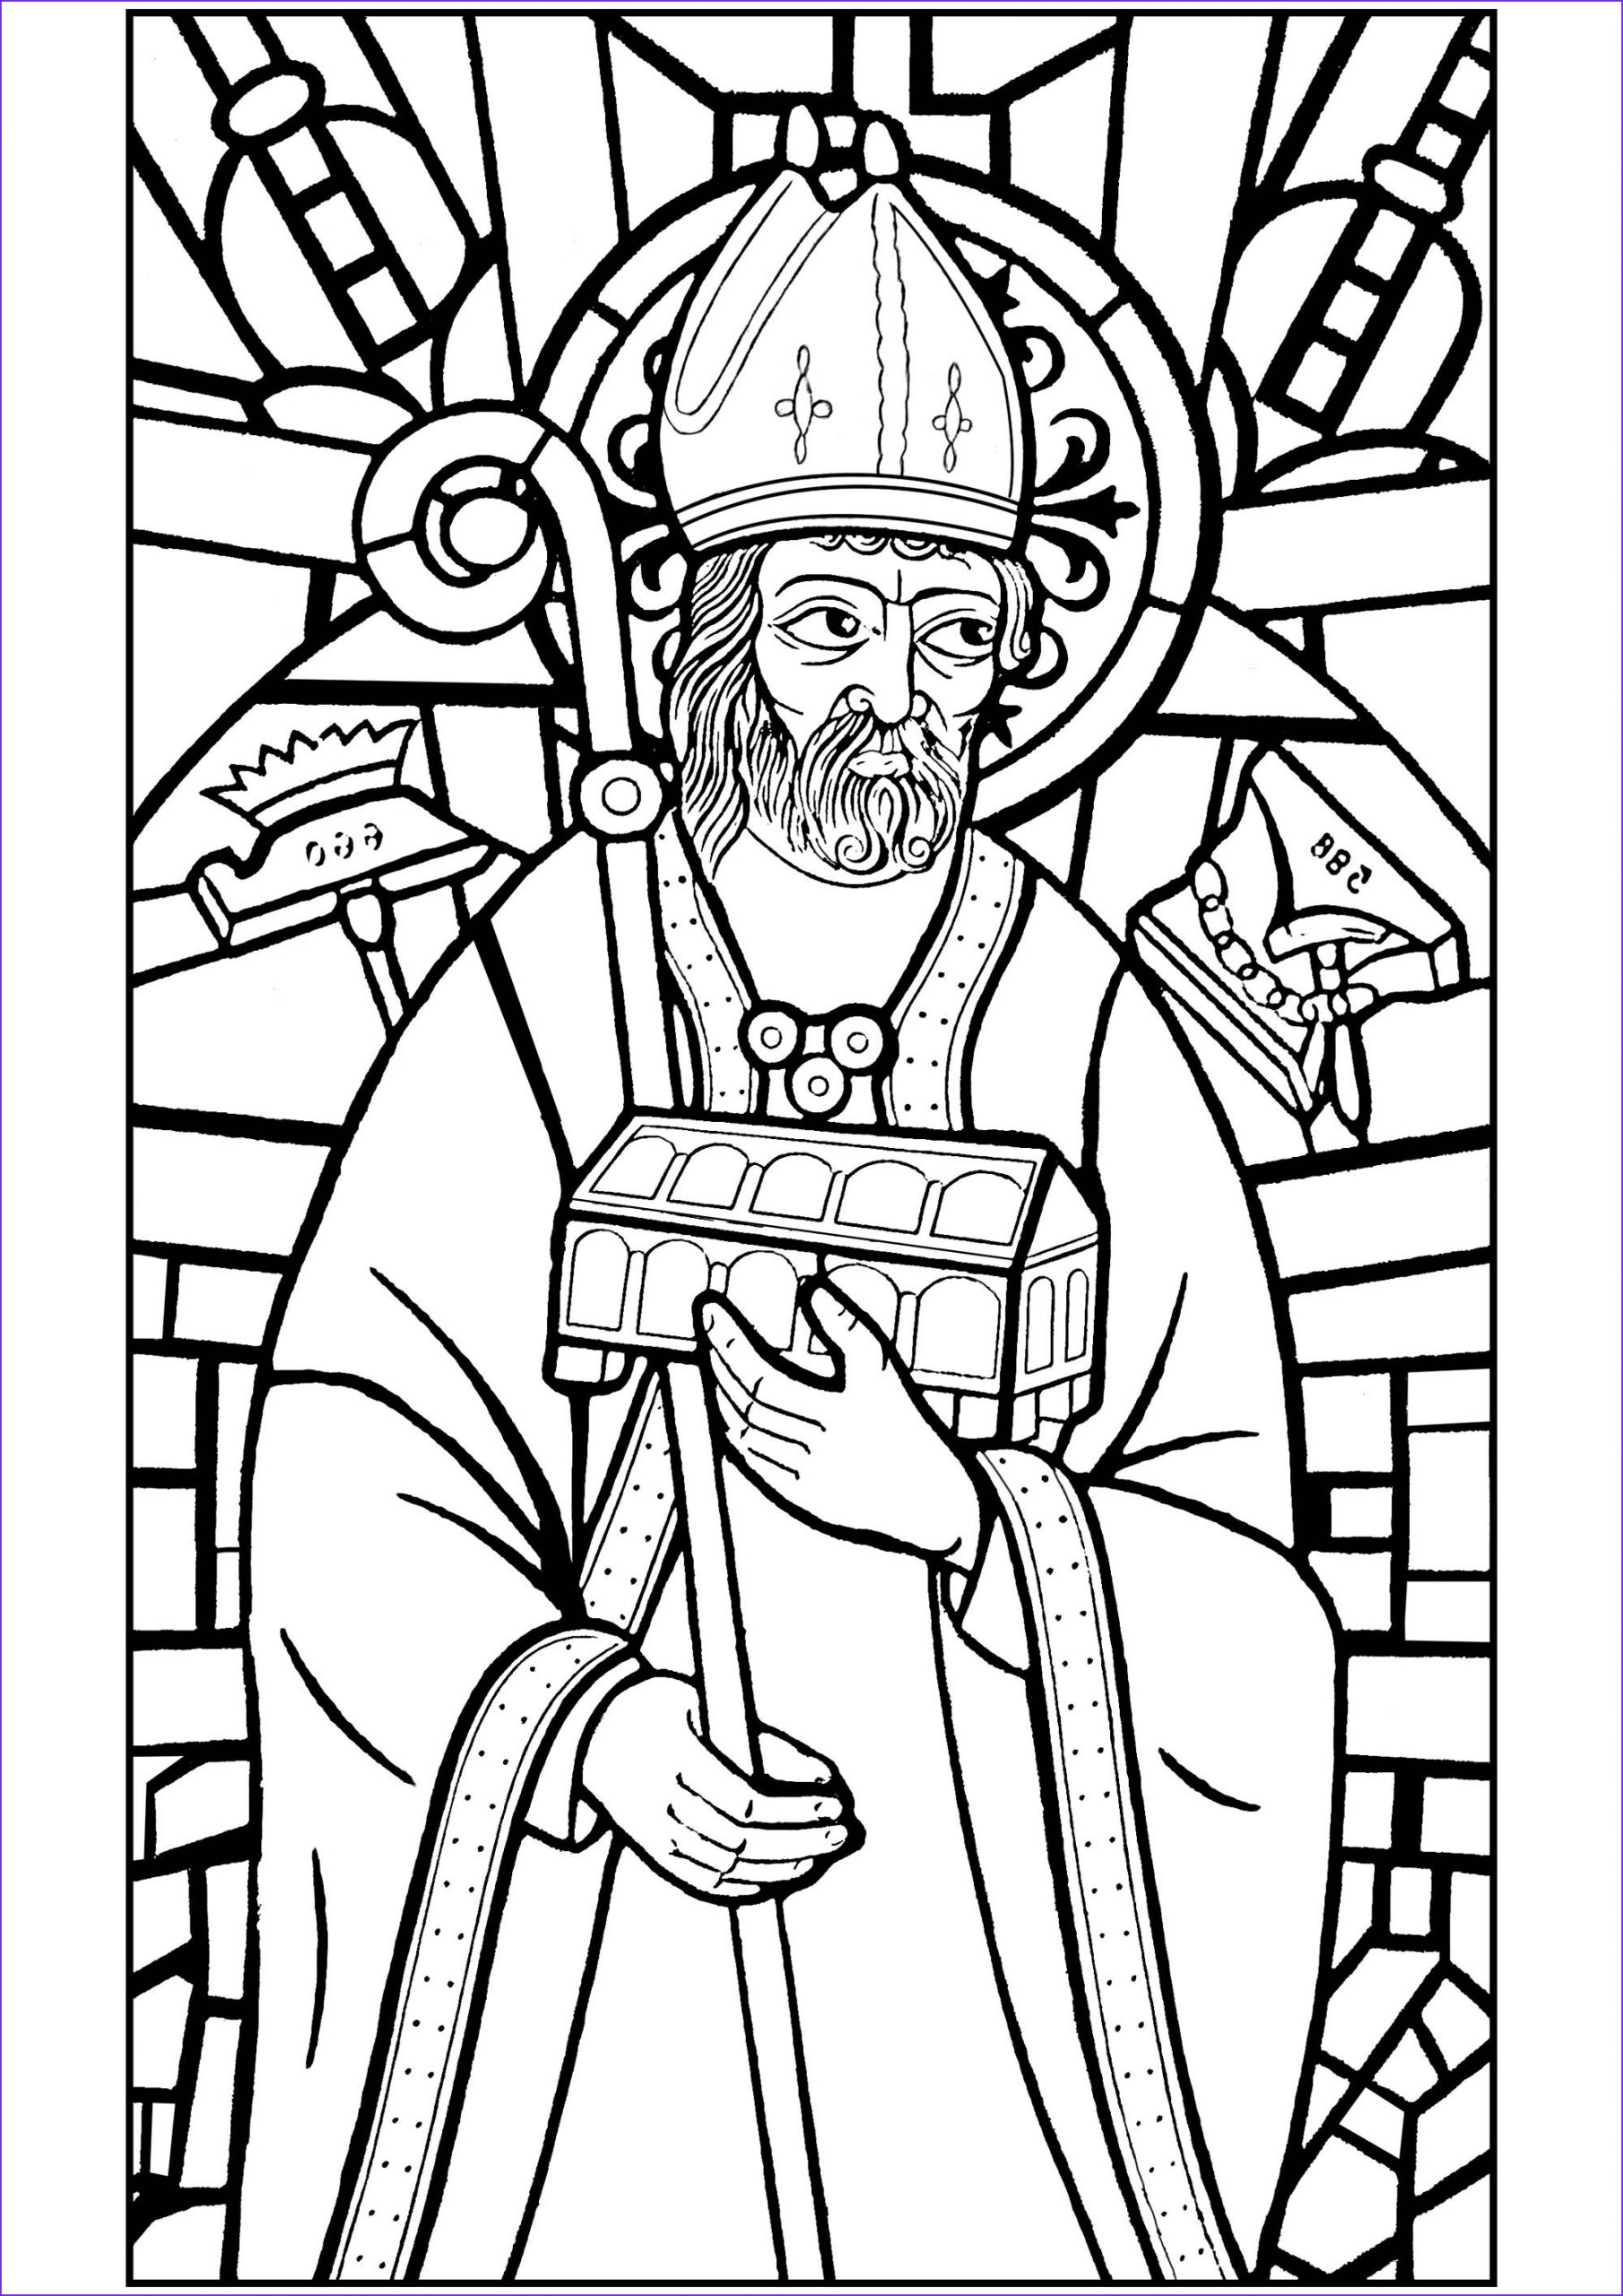 image=vitraux coloring stained glass saint eloi 1